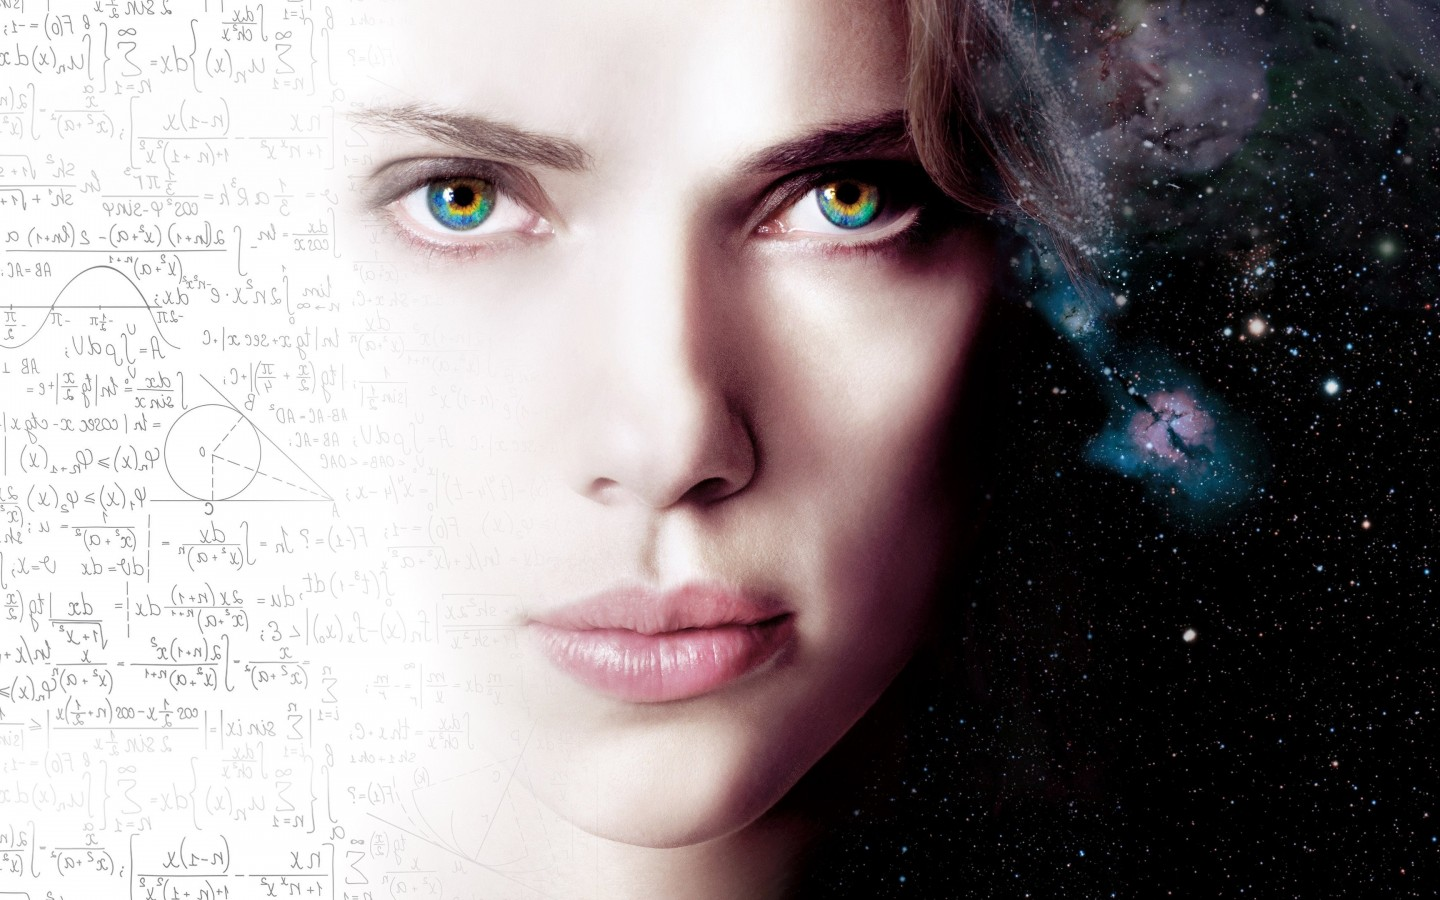 Scarlett Johansson As Lucy Wallpaper for Desktop 1440x900